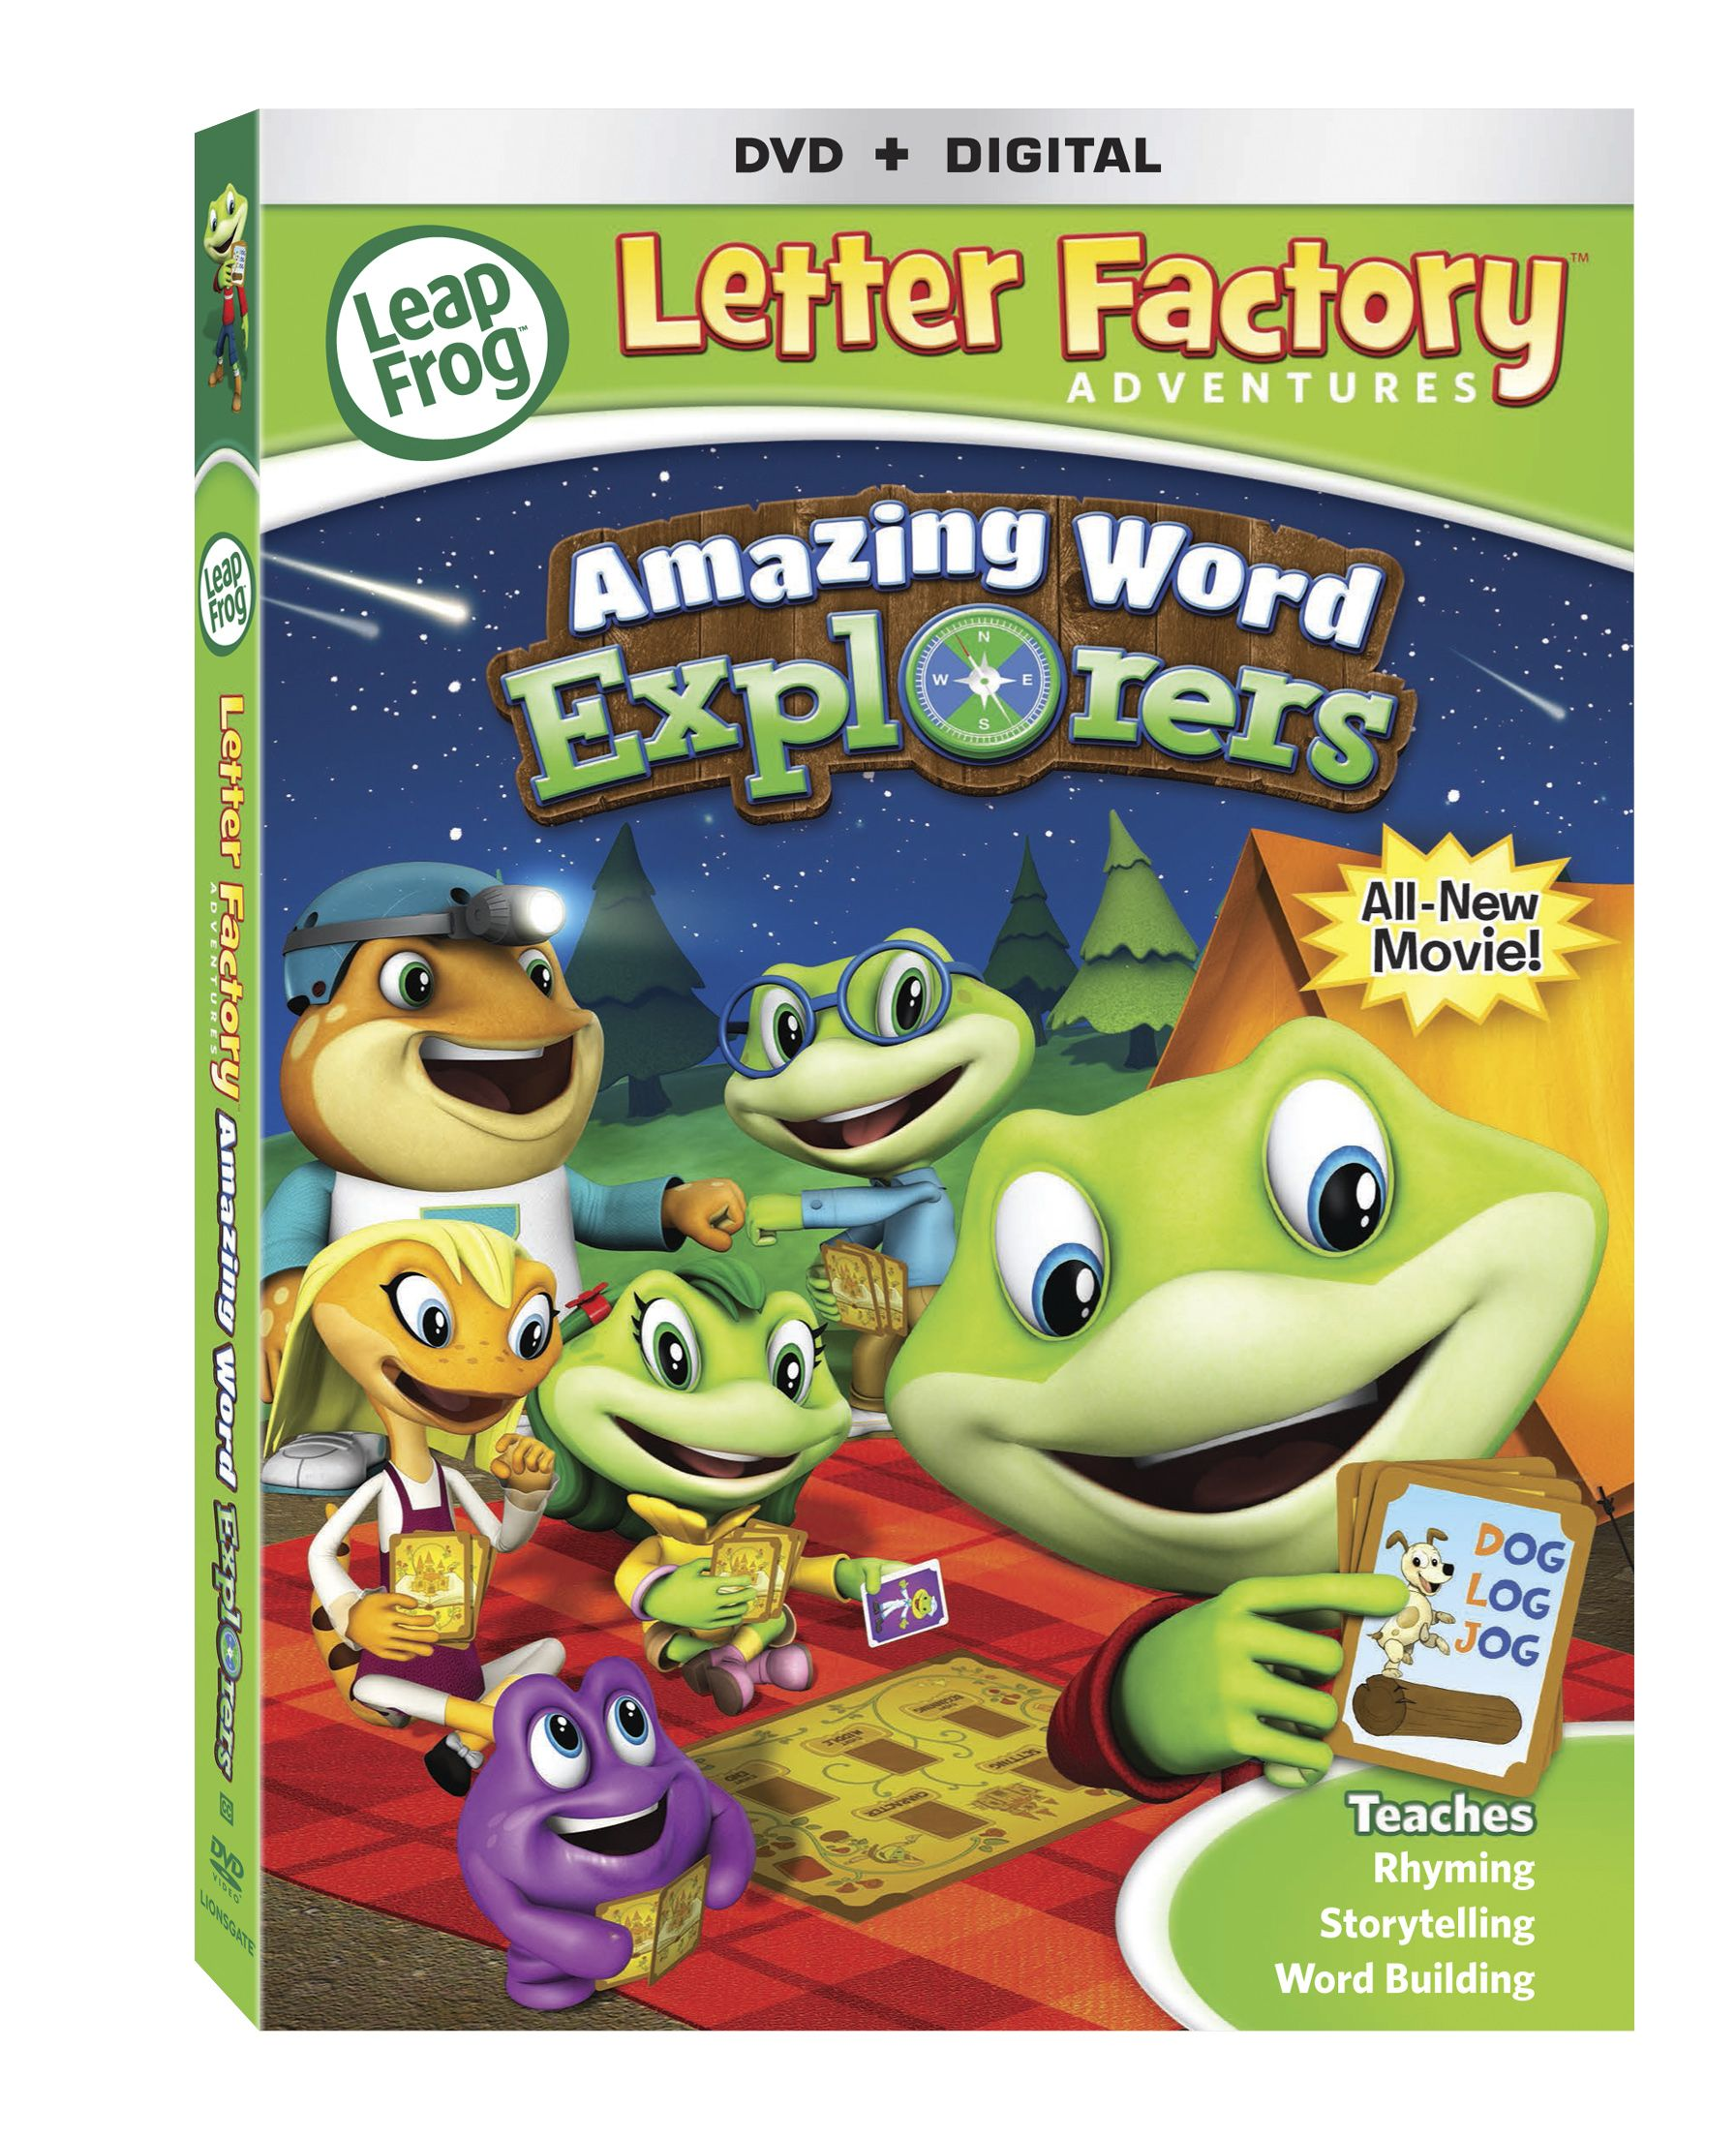 leapfrog letter factory adventures amazing word explorers review